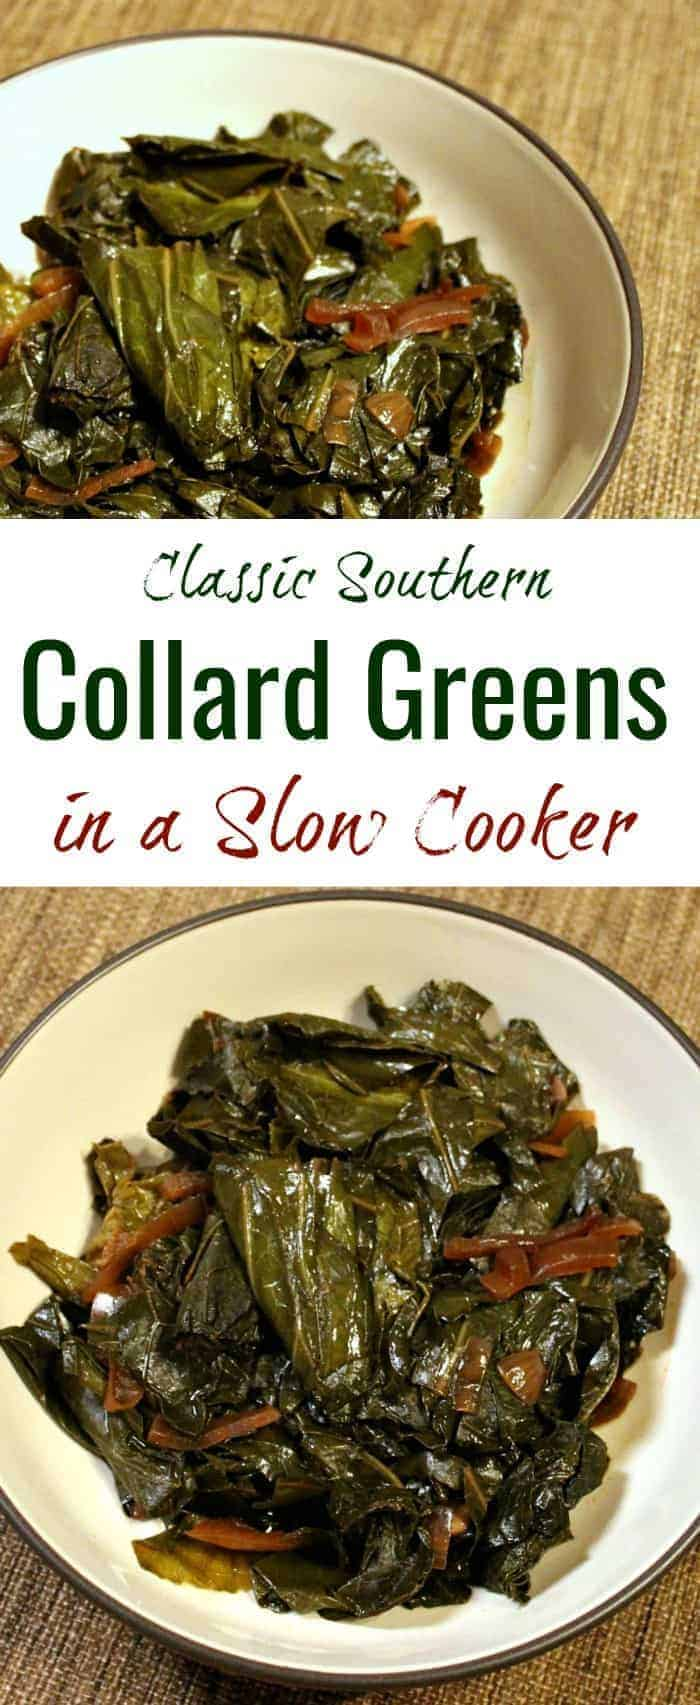 This classic slow cooker vegan collard greens recipe makes perfectly smoky, delicious Southern-style collard greens that will please even omnivores. An ideal side dish for Thanksgiving or New Year's, or for a casual Sunday dinner. | slow cooker collard greens | slow cooker collard greens recipe | Southern collard greens recipe | vegetarian collard greens | meatless collard greens | wfpb collard greens | #vegancollardgreens #collardgreens #collardgreensrecipe